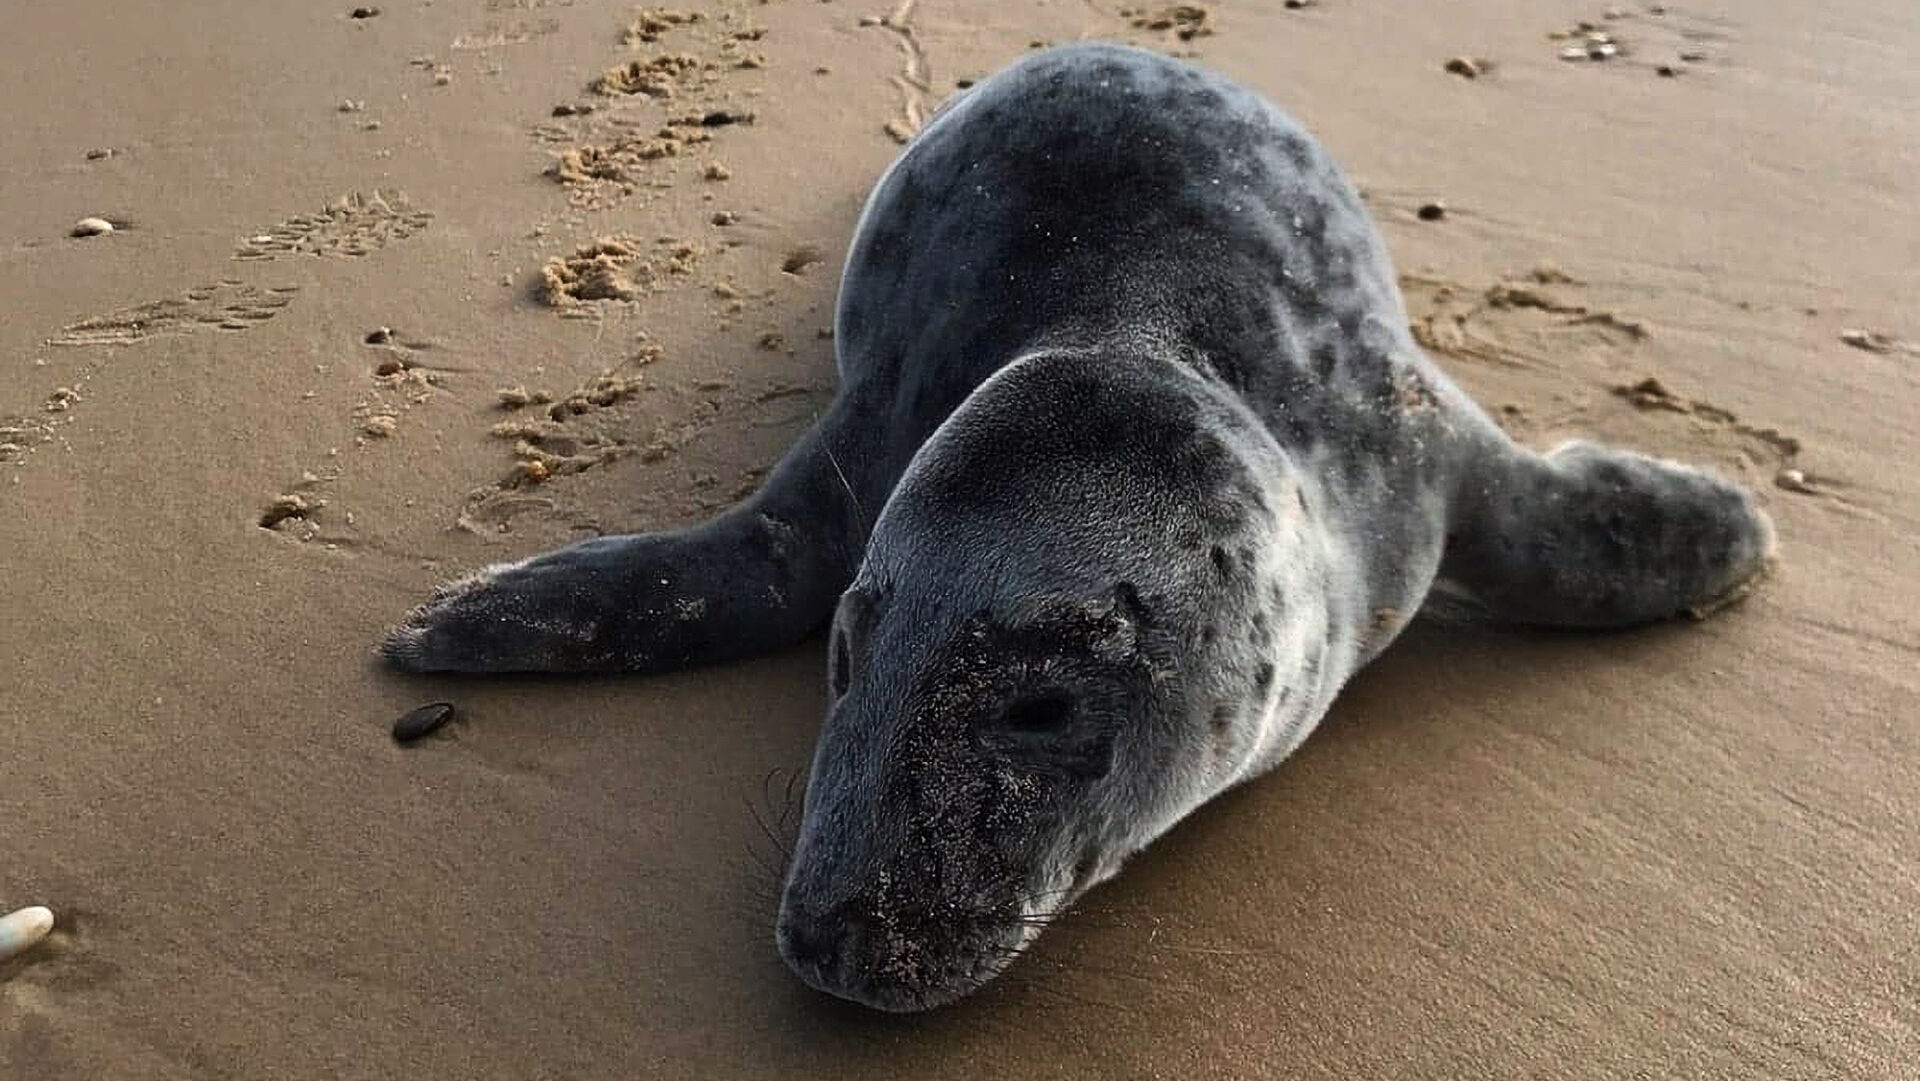 VIDEO: Moment Adorable Three-Month-Old Seal Pup Is Rescued After Being Bitten By Dog